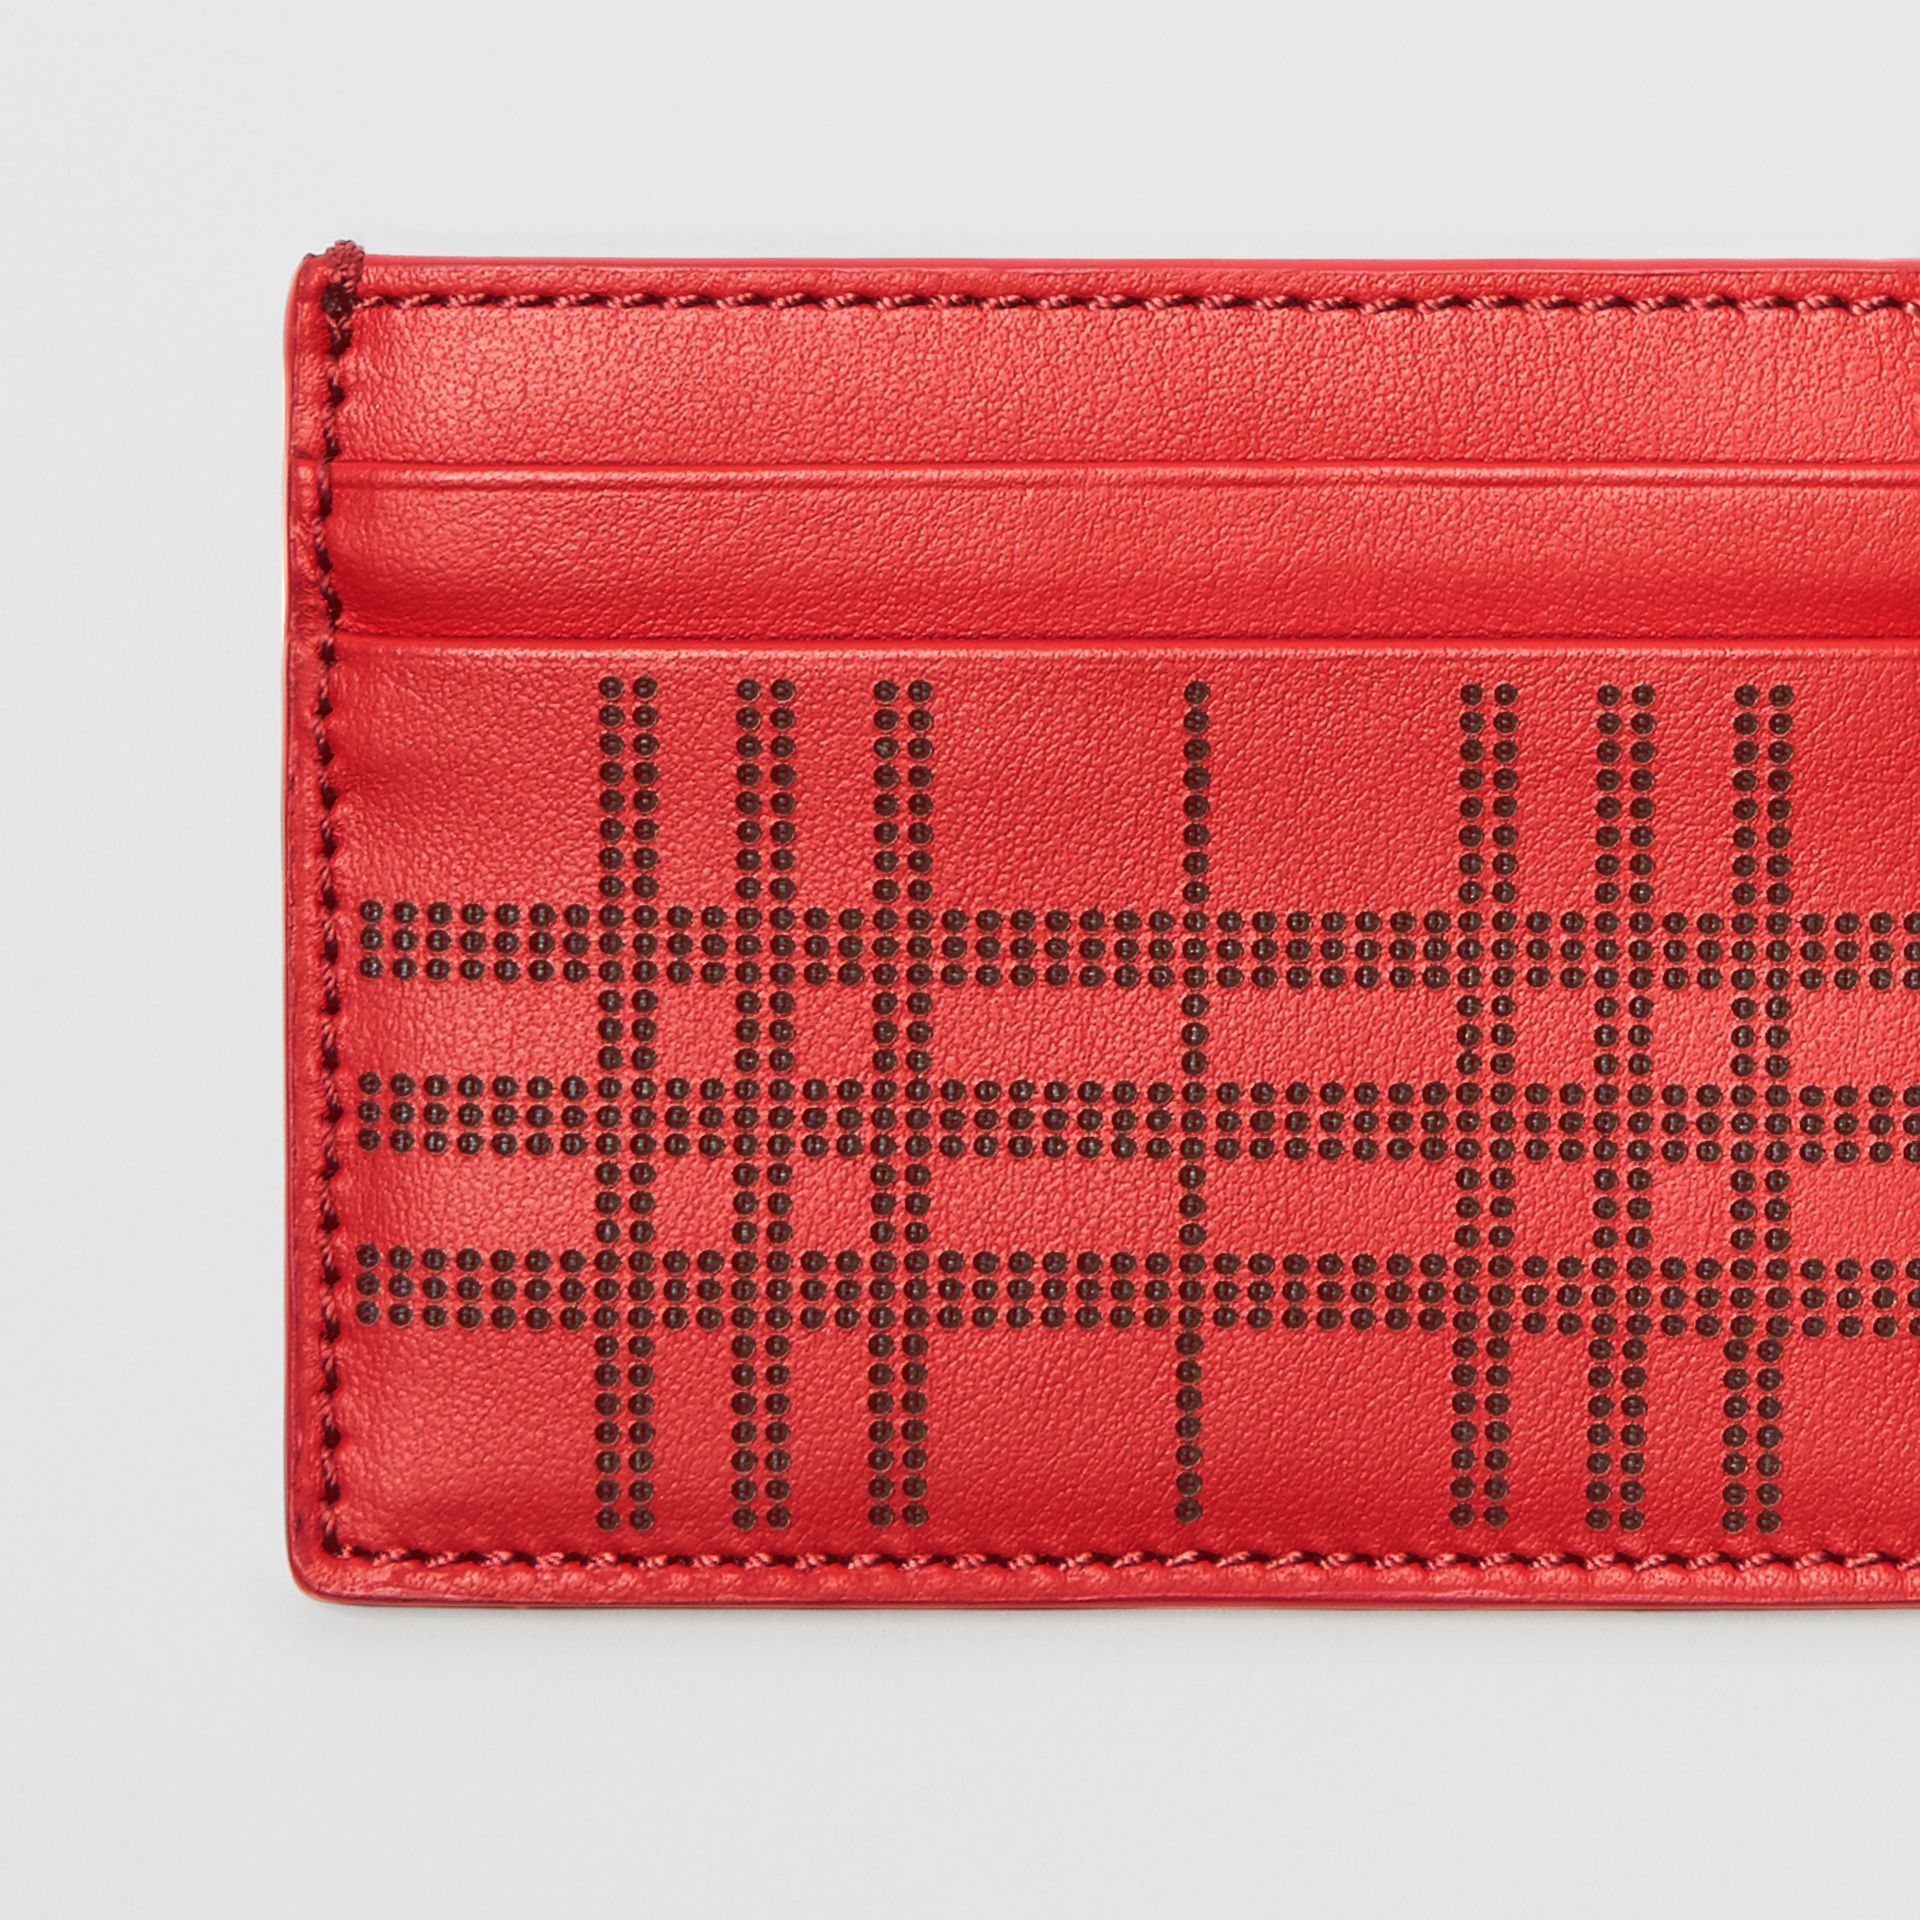 Perforated Check Leather Card Case in Rust Red - Men | Burberry - gallery image 1